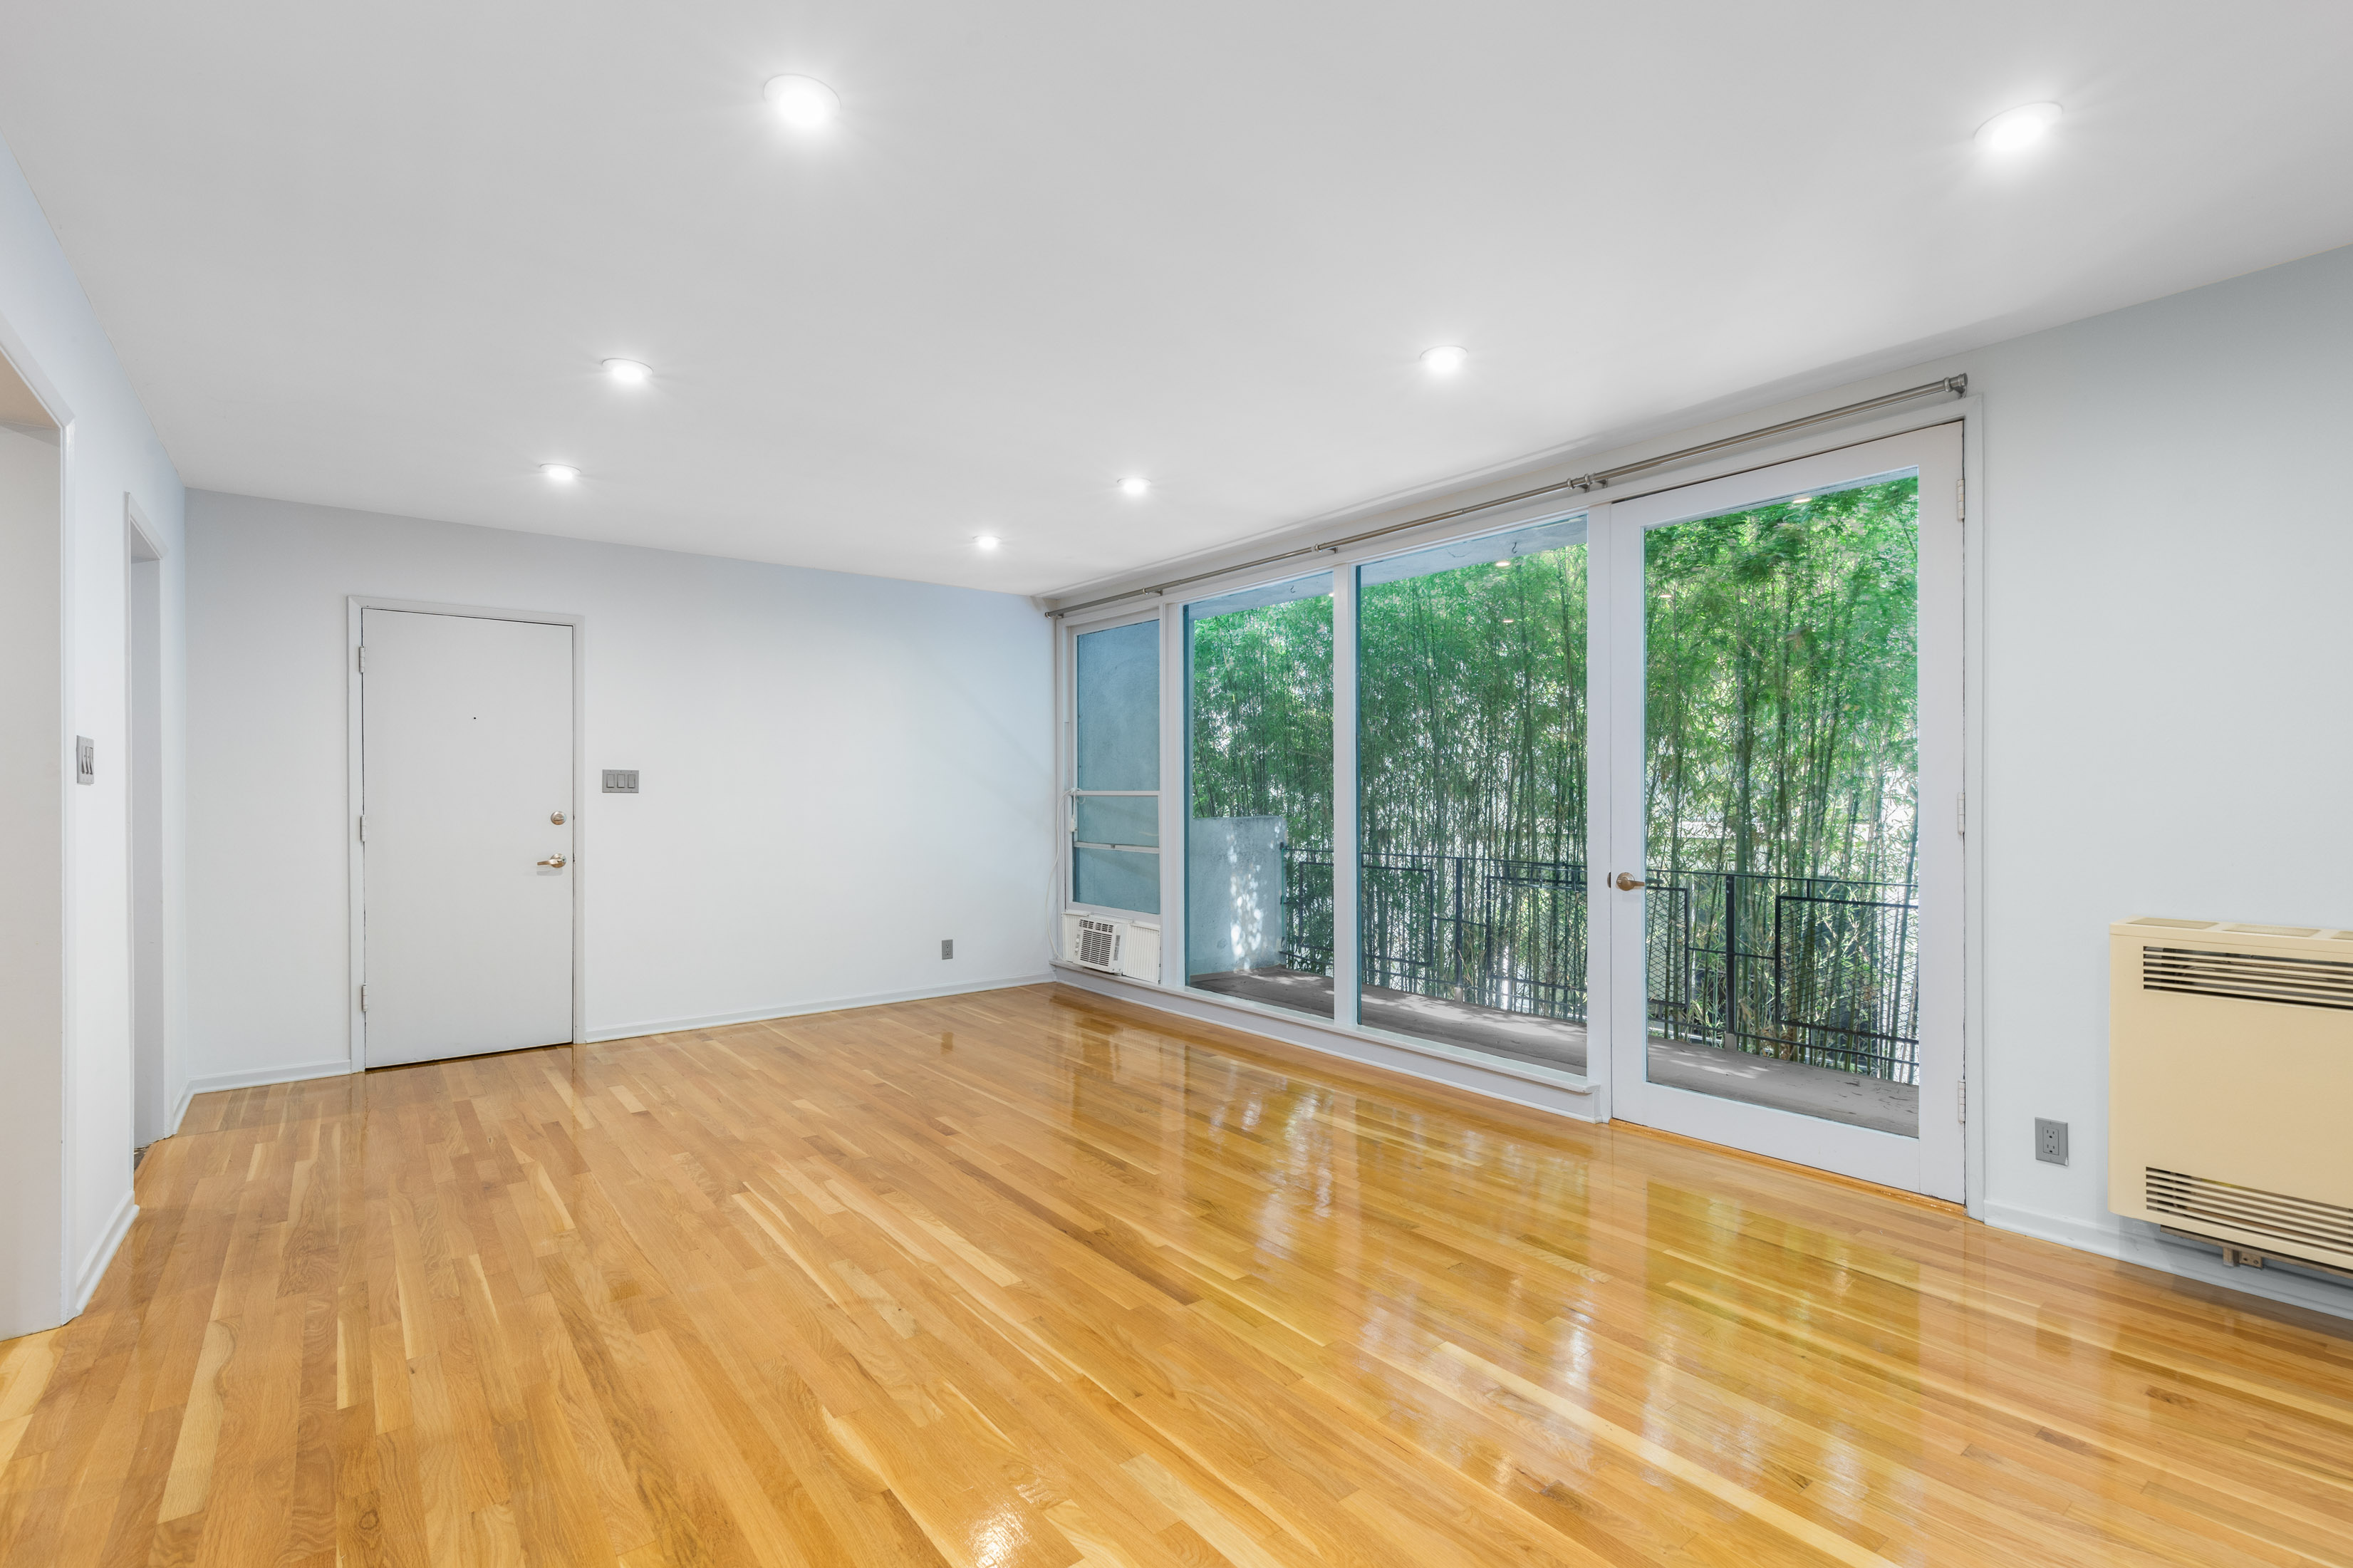 West Hollywood Dream Apartment! Brand New Renovations w/ Large Private Balcony and Floor-to-ceiling windows!